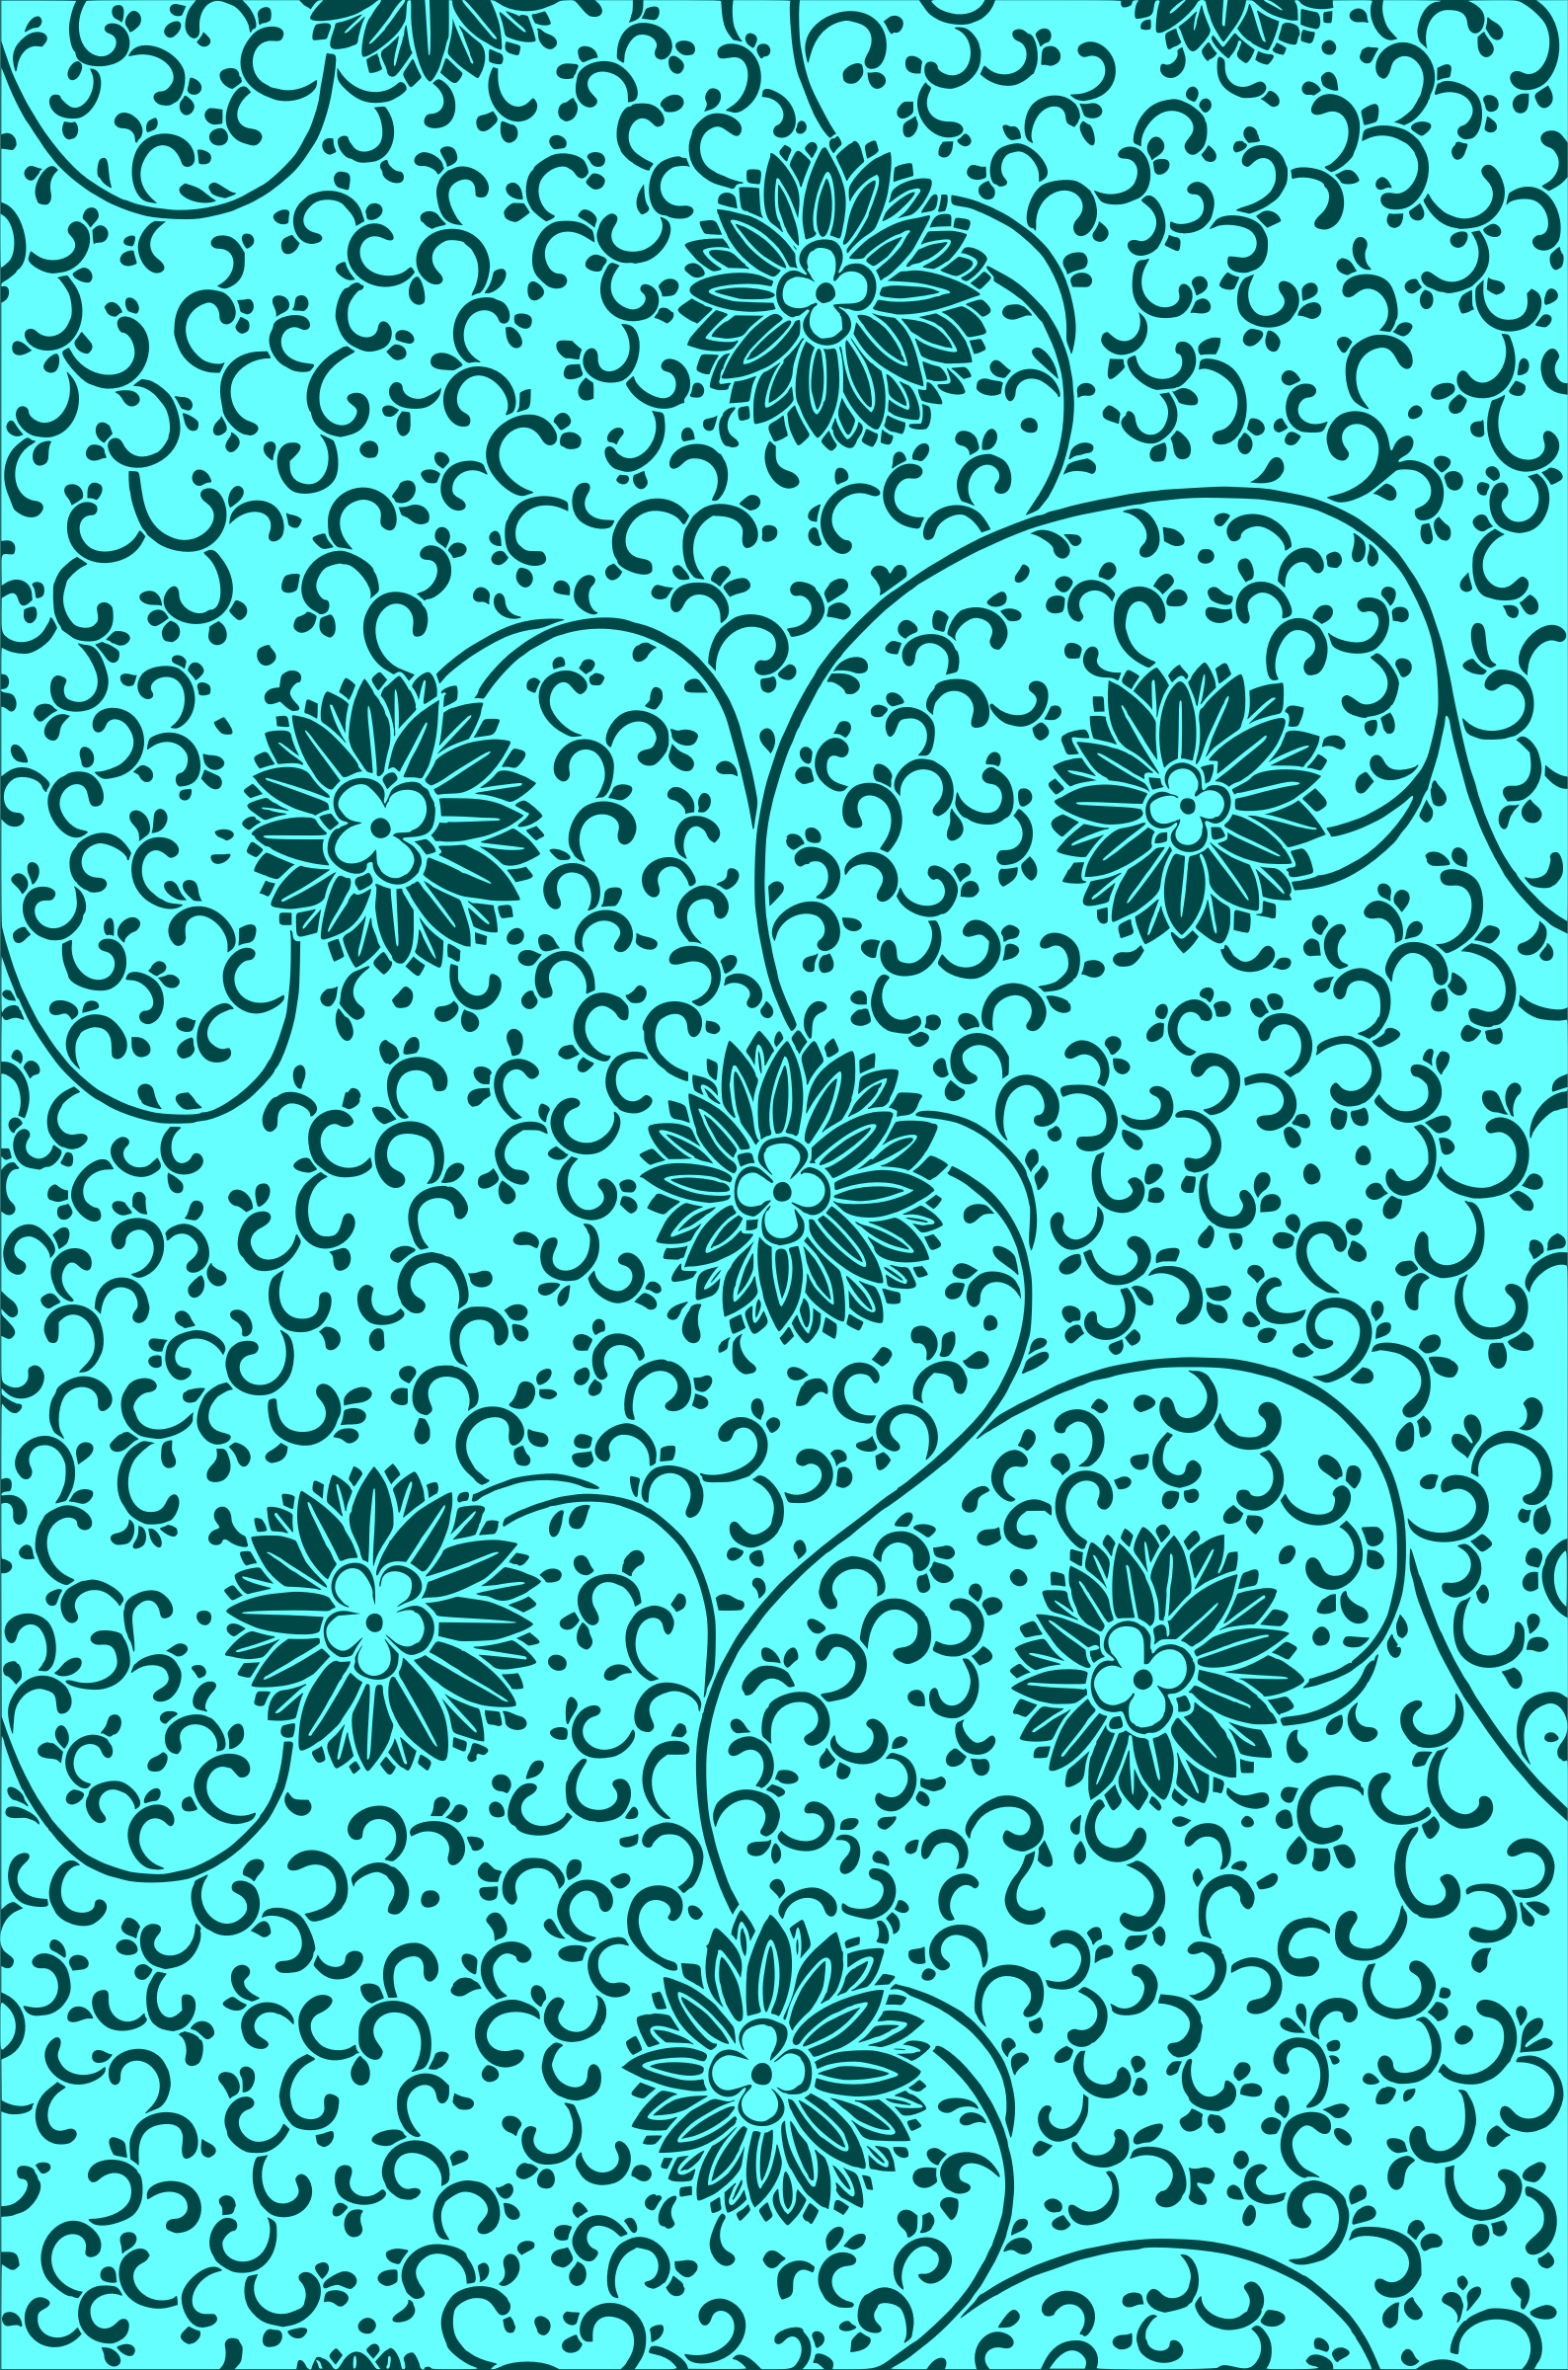 Floral pattern 2 (colour 5) by Firkin